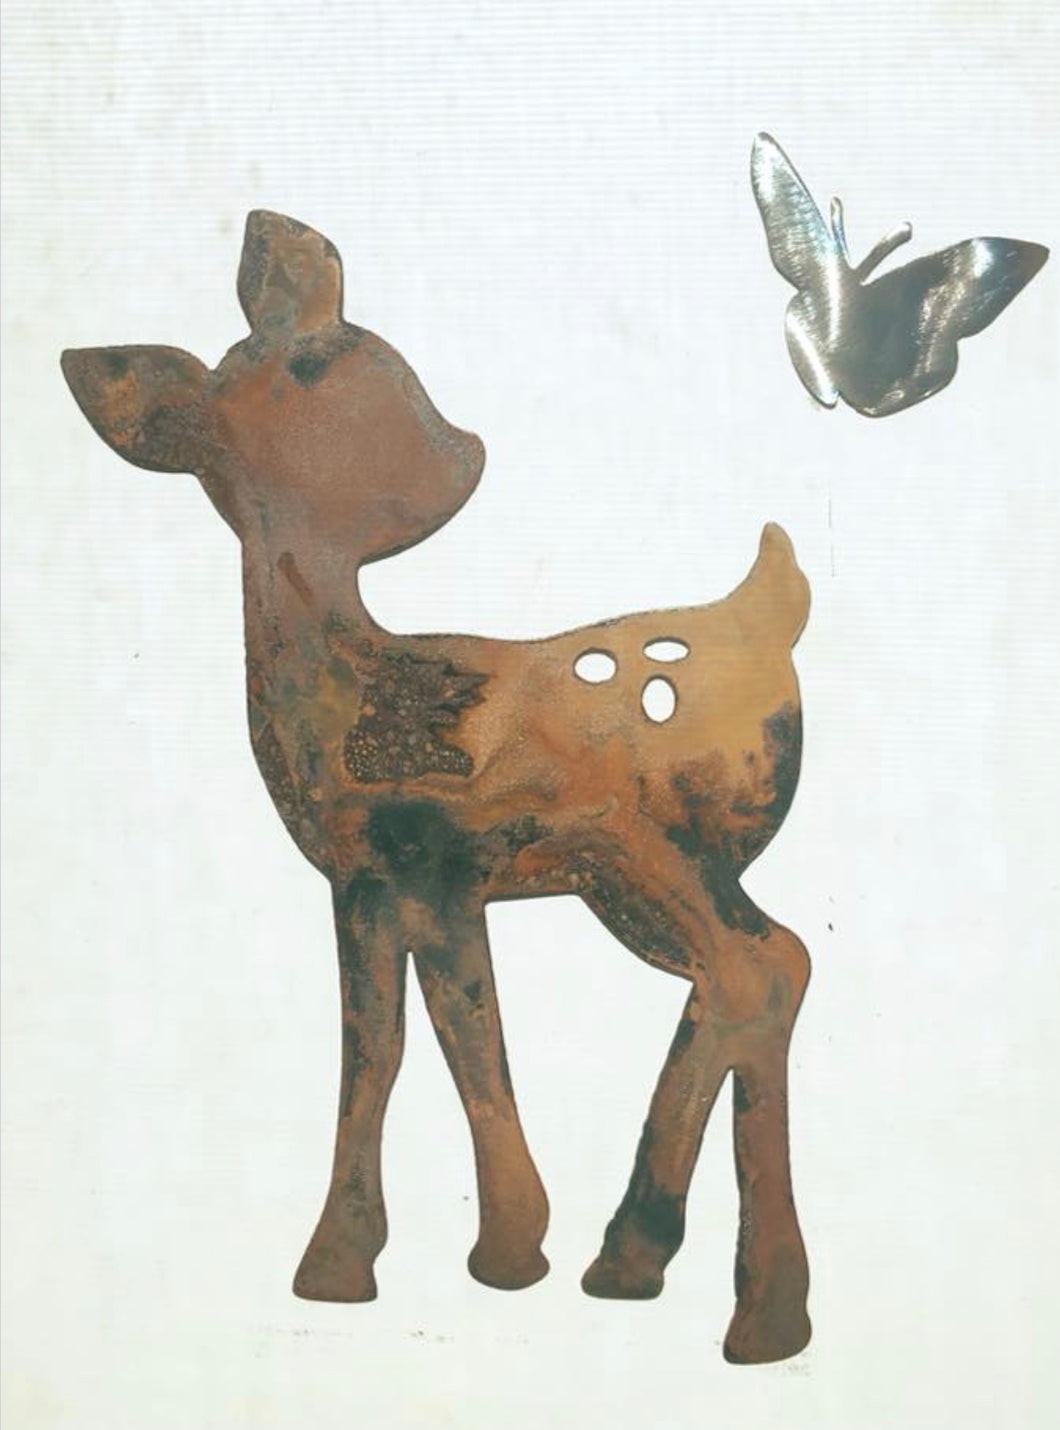 Adorable Fawn with Friendly Butterfly - Garden & Yard Decor by Forged From The Ashes Inspirational Gifts